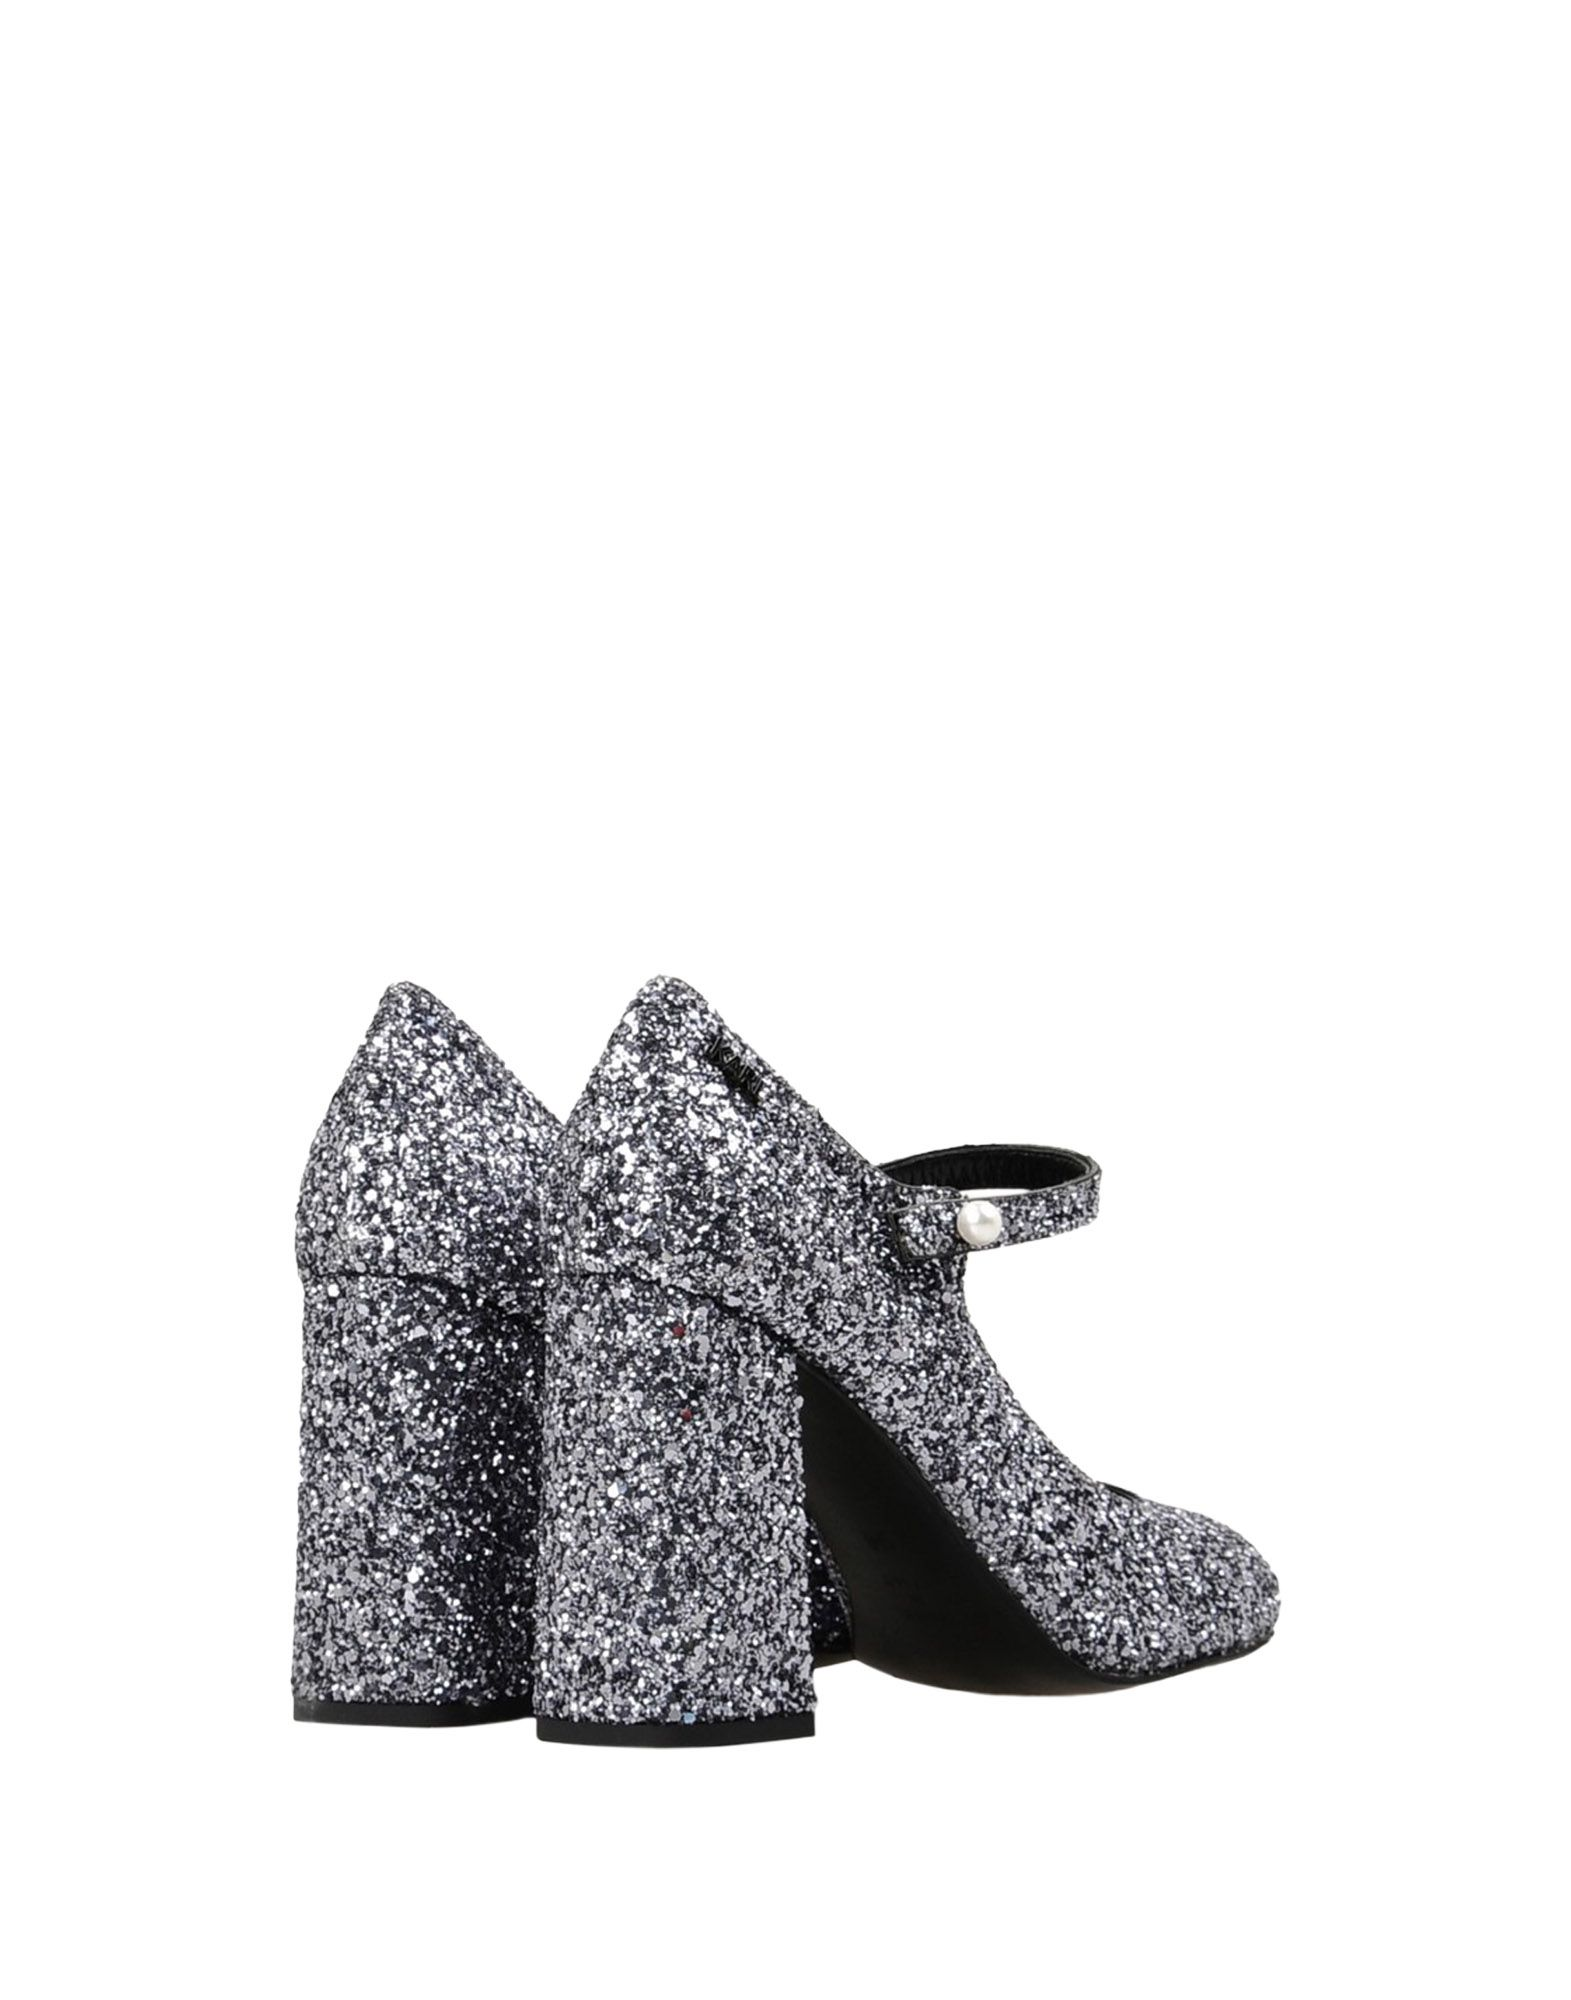 Décolleté Karl Lagerfeld Pyramide Mary Jane Glitter - Donna - 11424004EB